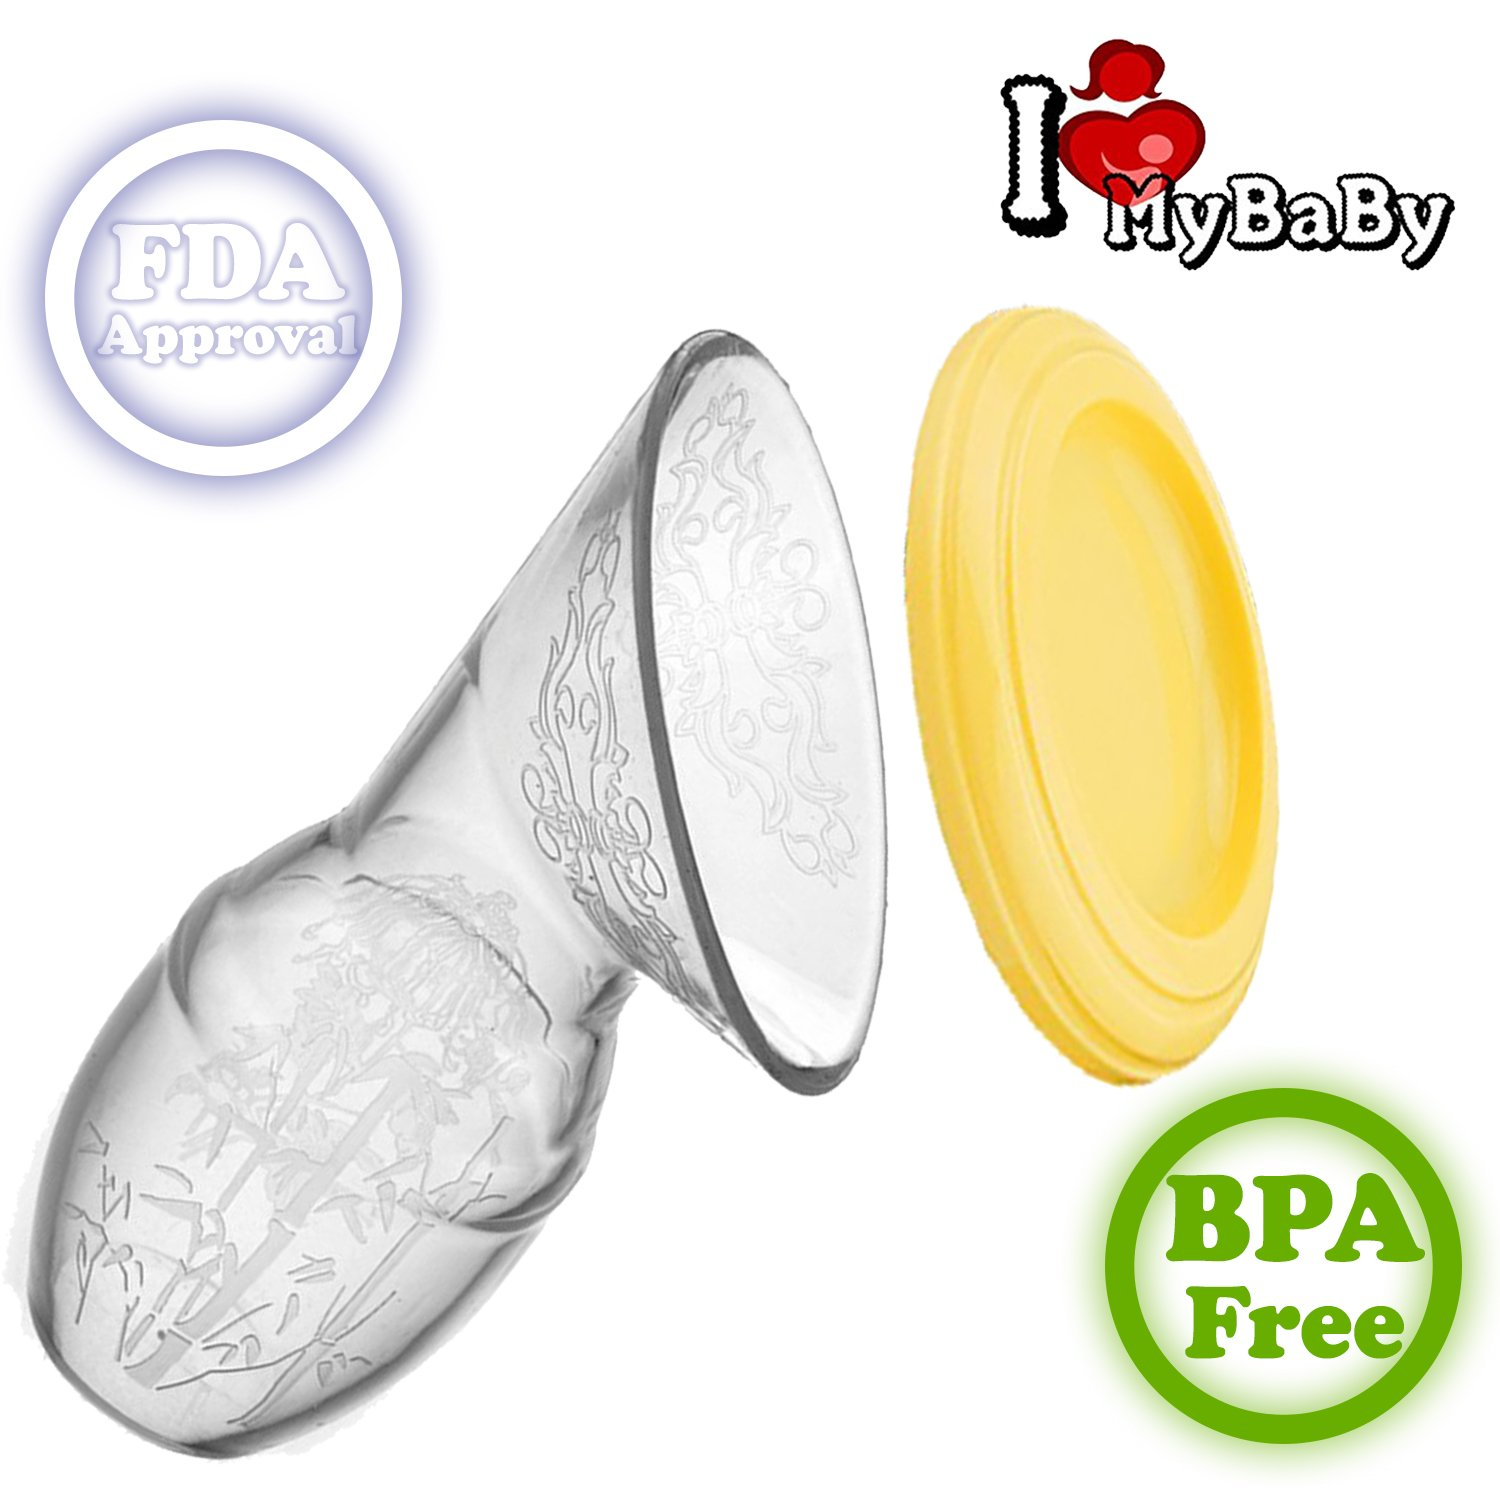 Manual Breast Pump, Portable Silicone Breastfeeding, BPA Free + FDA approved, Very Comfortable Pumping Hand, Milk Pumps, Perfect Suction Breastmilk Milkpump, Super Soft Ergonomic and Easy to use